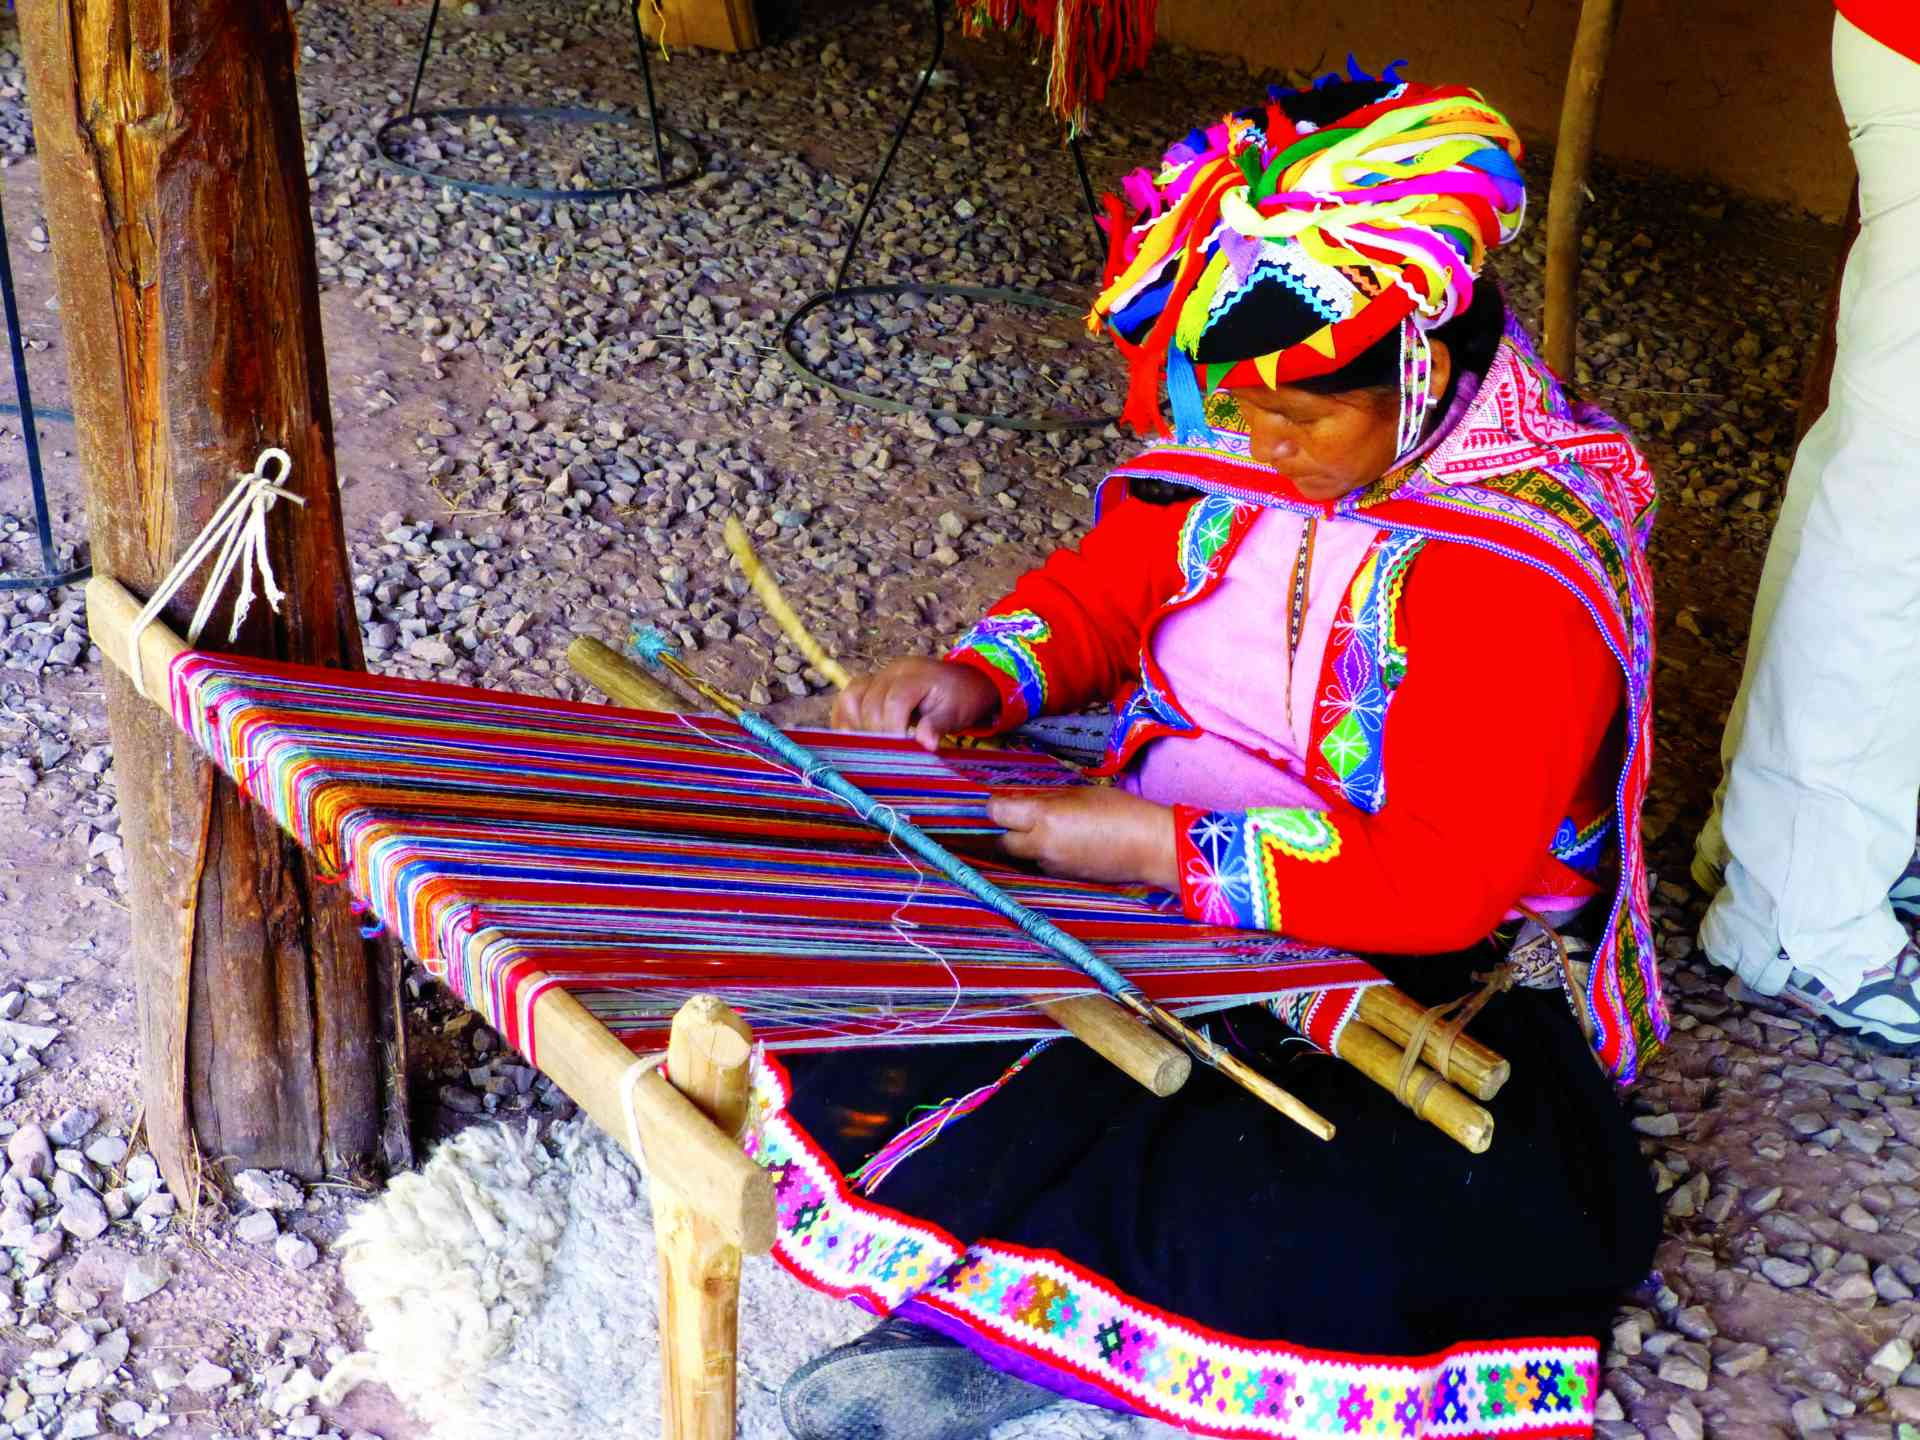 Weaver in Peru by Zoe Francis